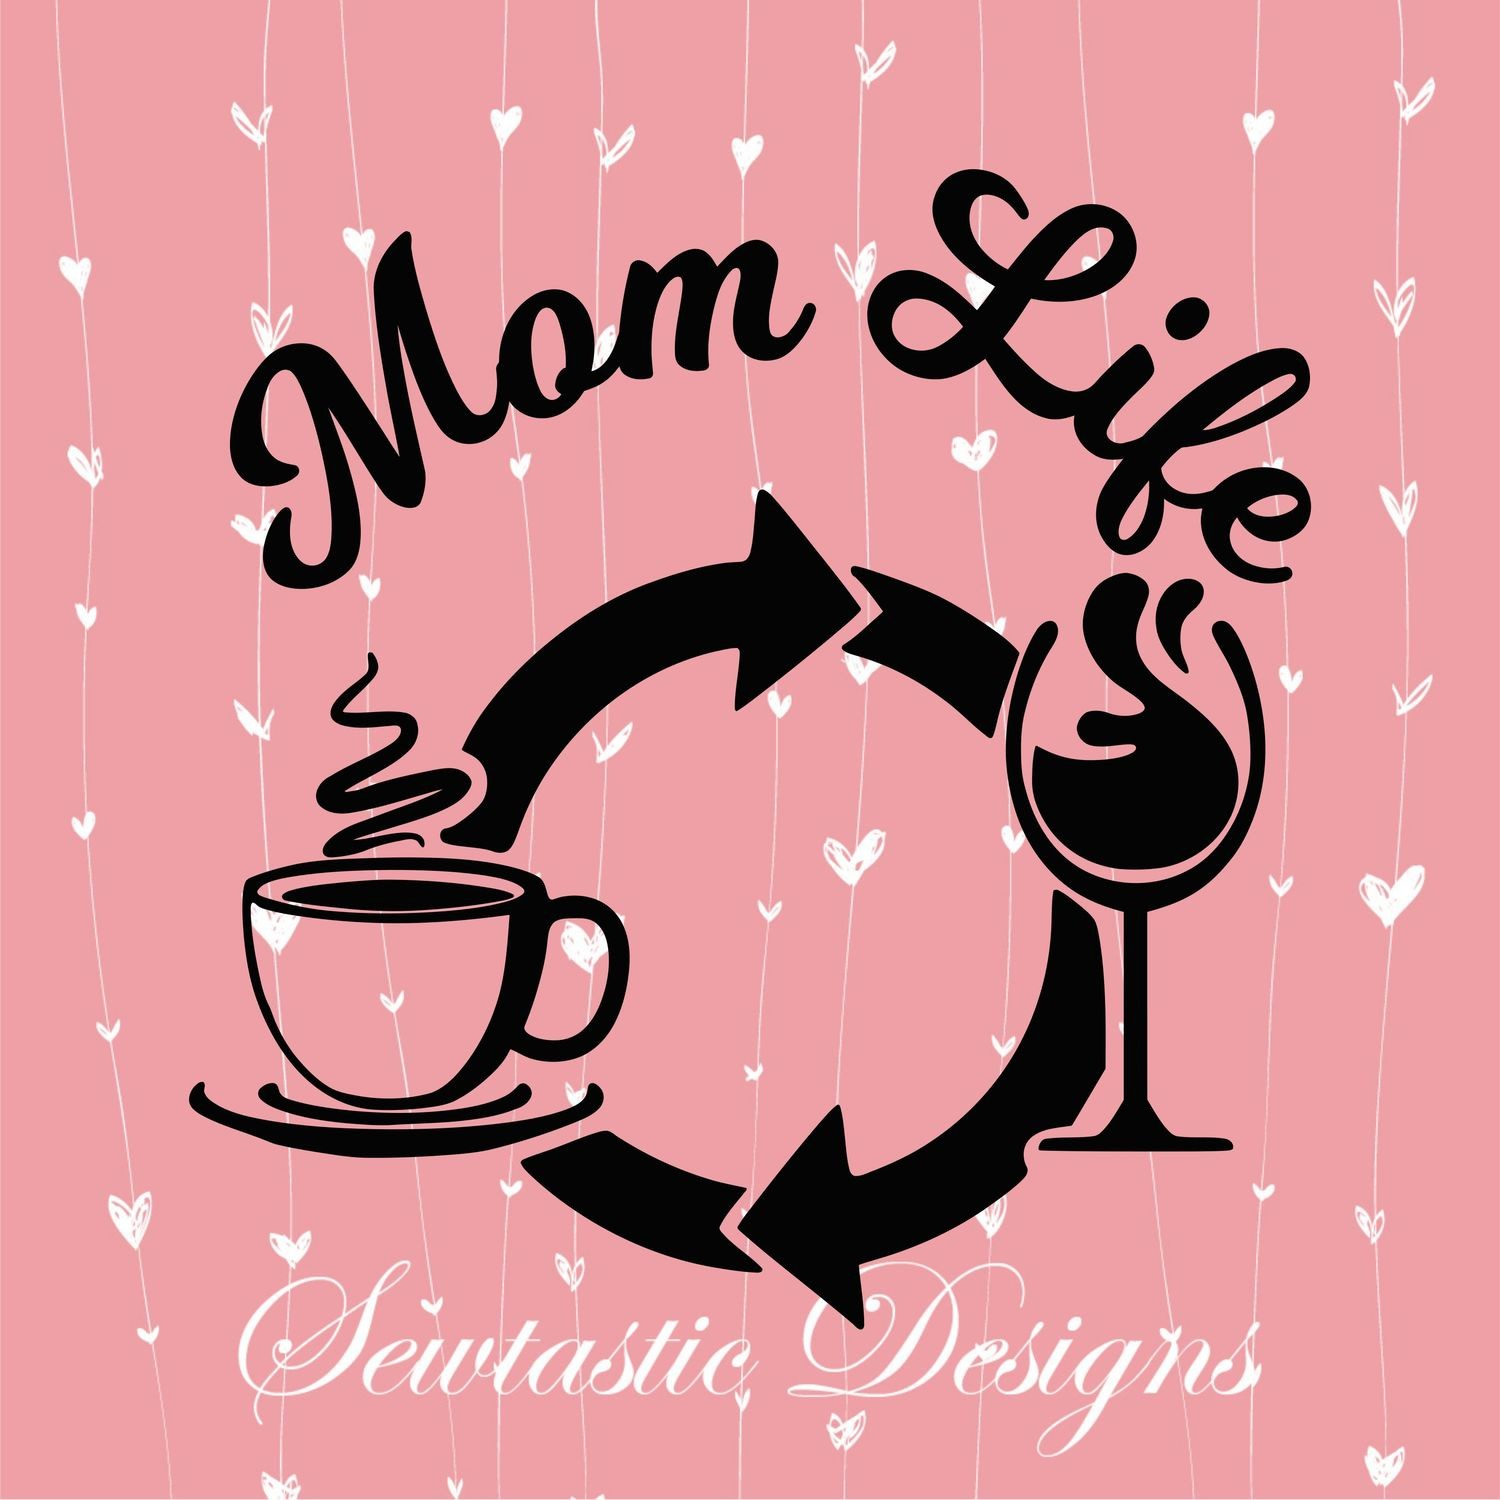 Mom Life Svg Mom Svg Life Svg Coffee Svg Wine Svg Cut File Iron On Decal Cricut Silhouette Scanncut Many More